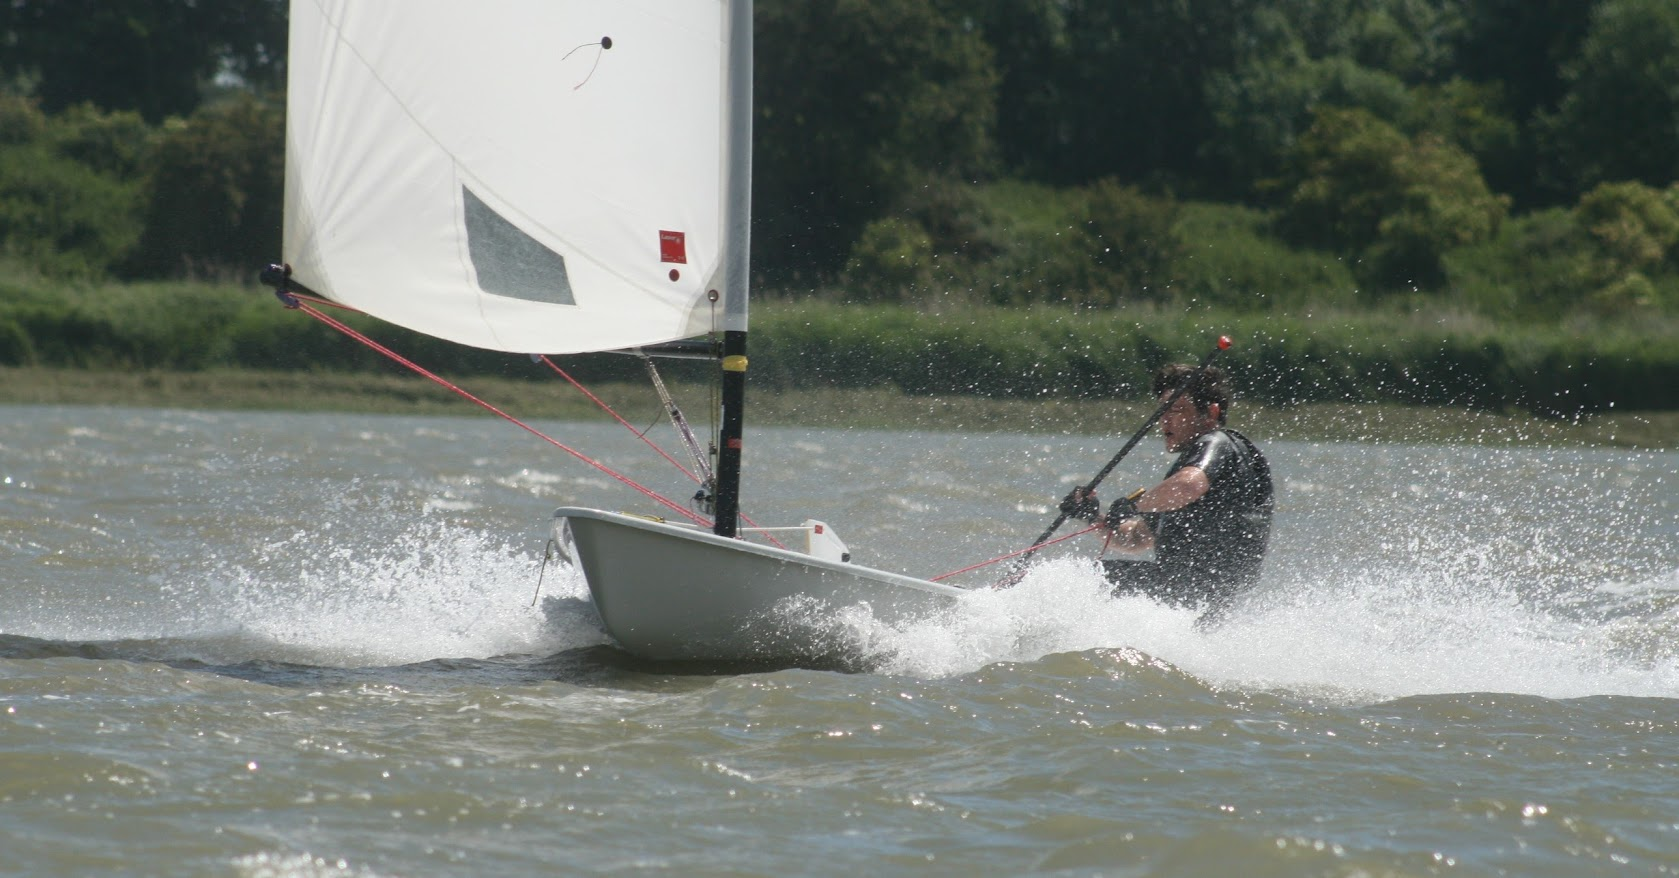 Laser racing at Waldringfield